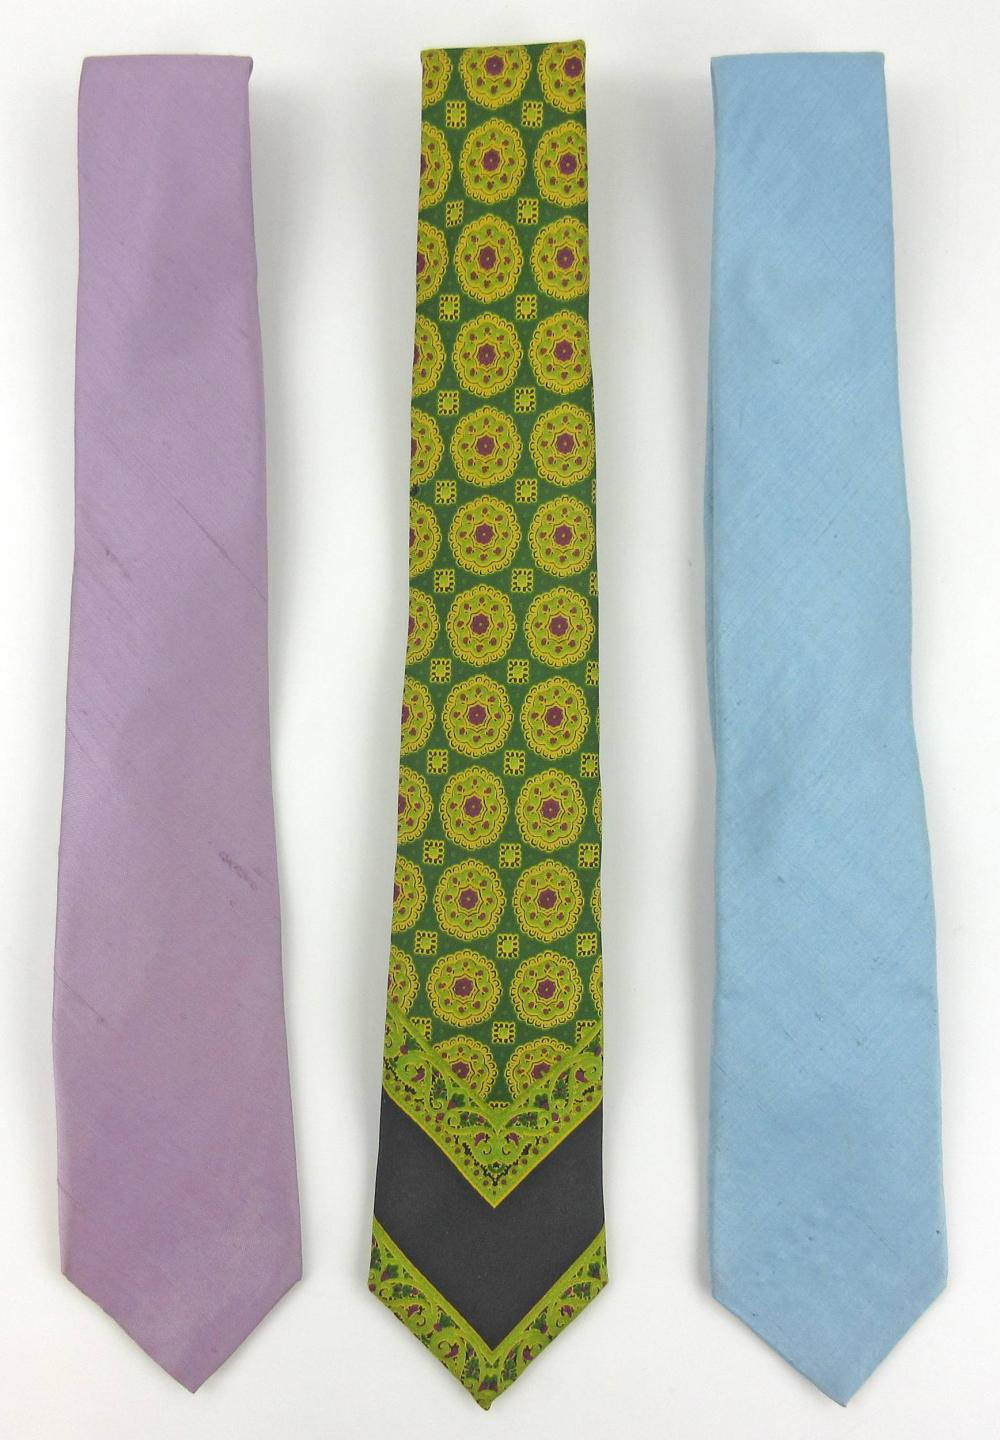 Jackie Kennedy ALS Mentioning Ties, Along with 3 of Oleg Cassini's Neckties